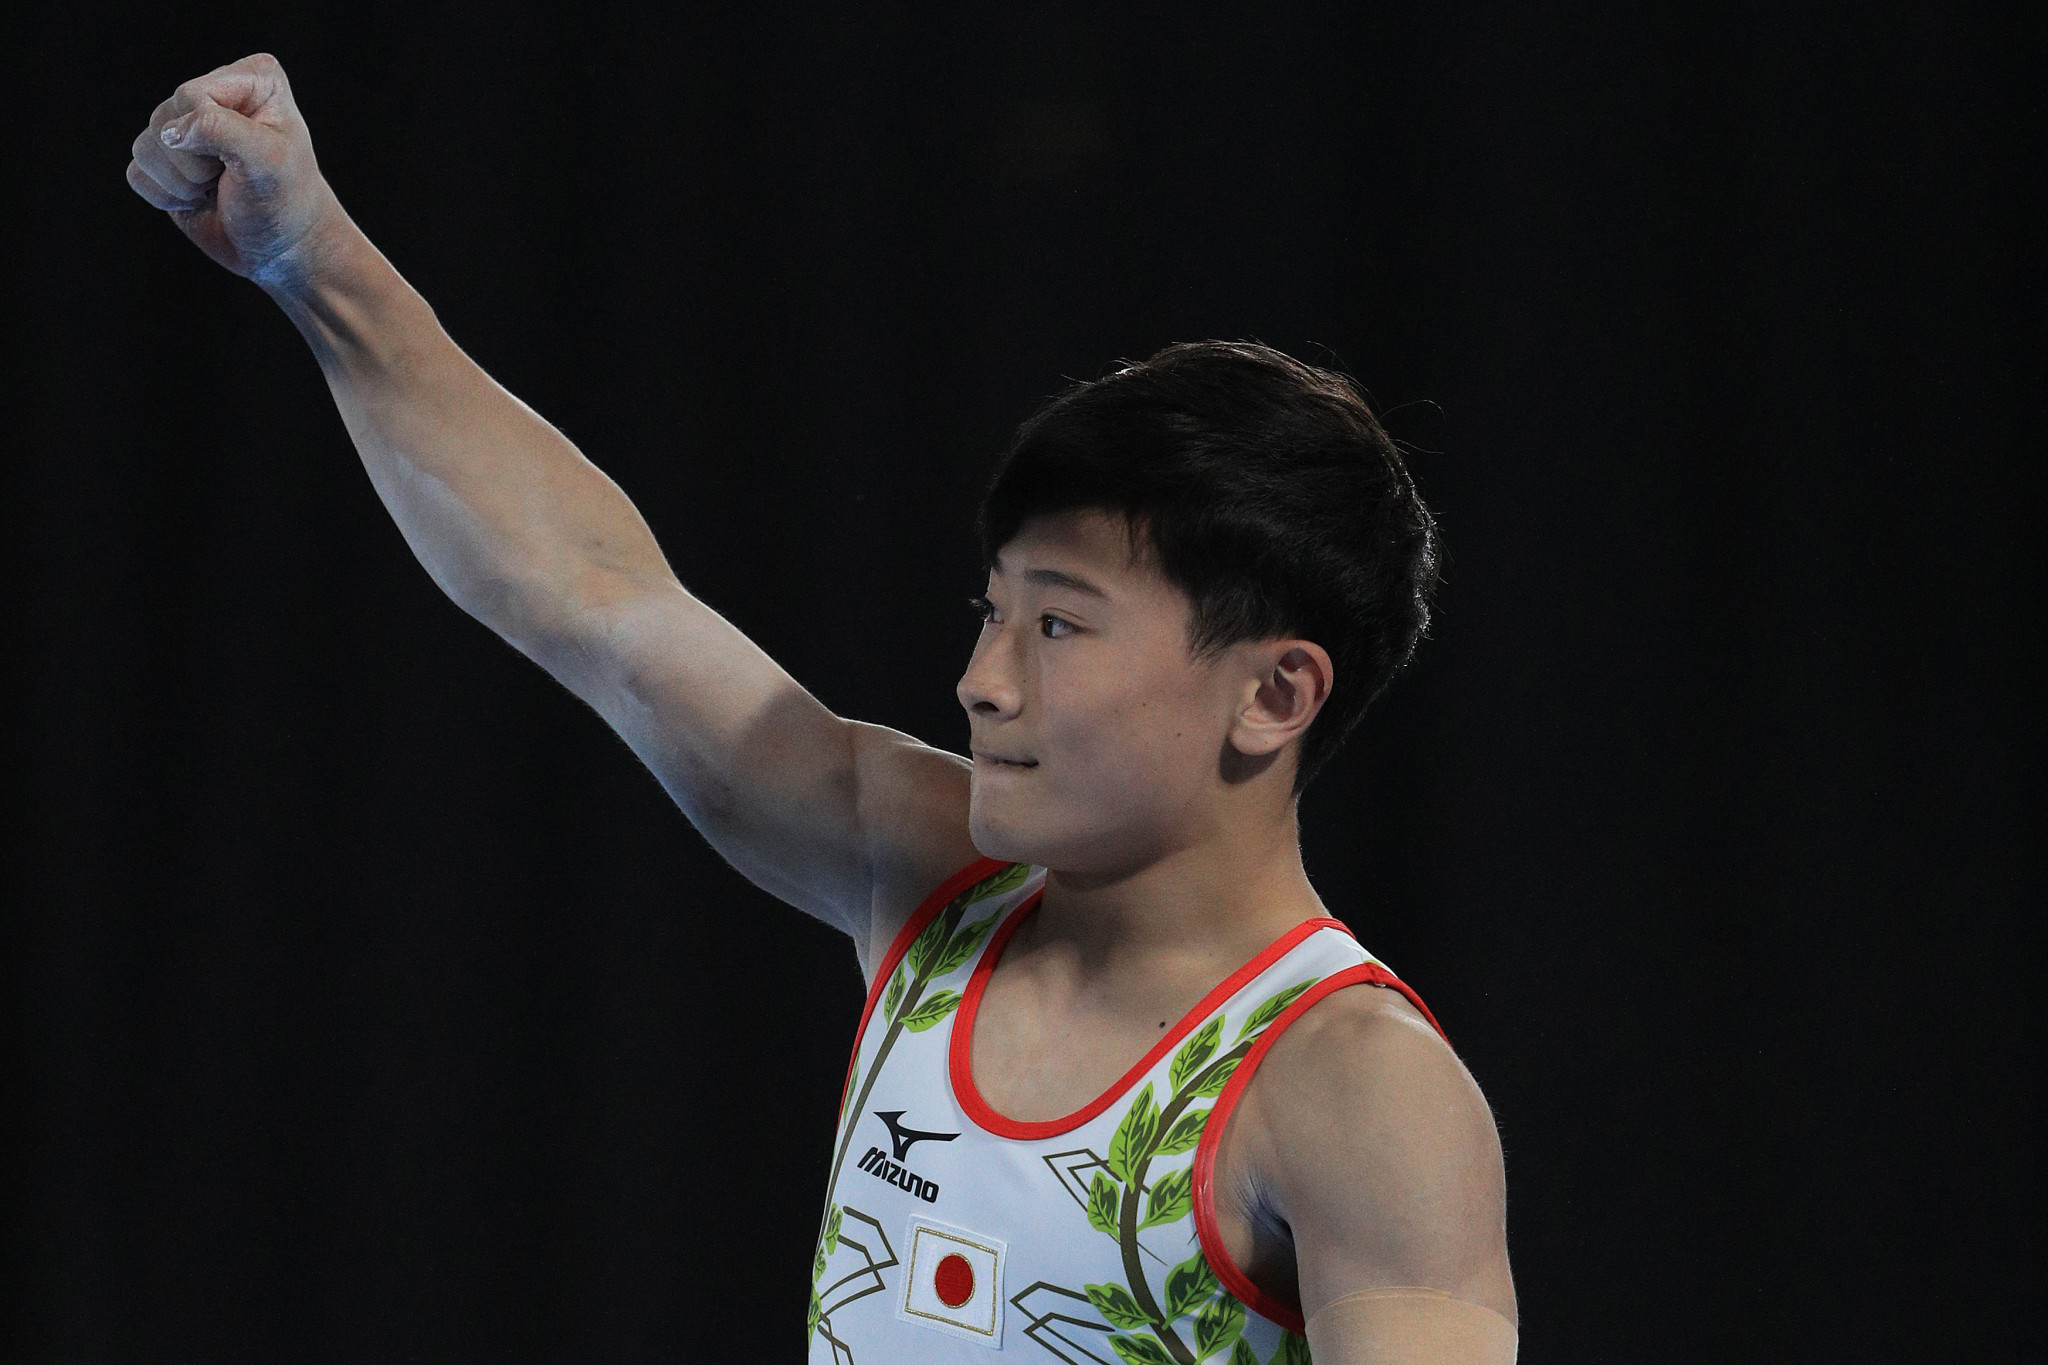 Takeru Kitazono claimed five gymnastics medals at Buenos Aires 2018 ©Getty Images